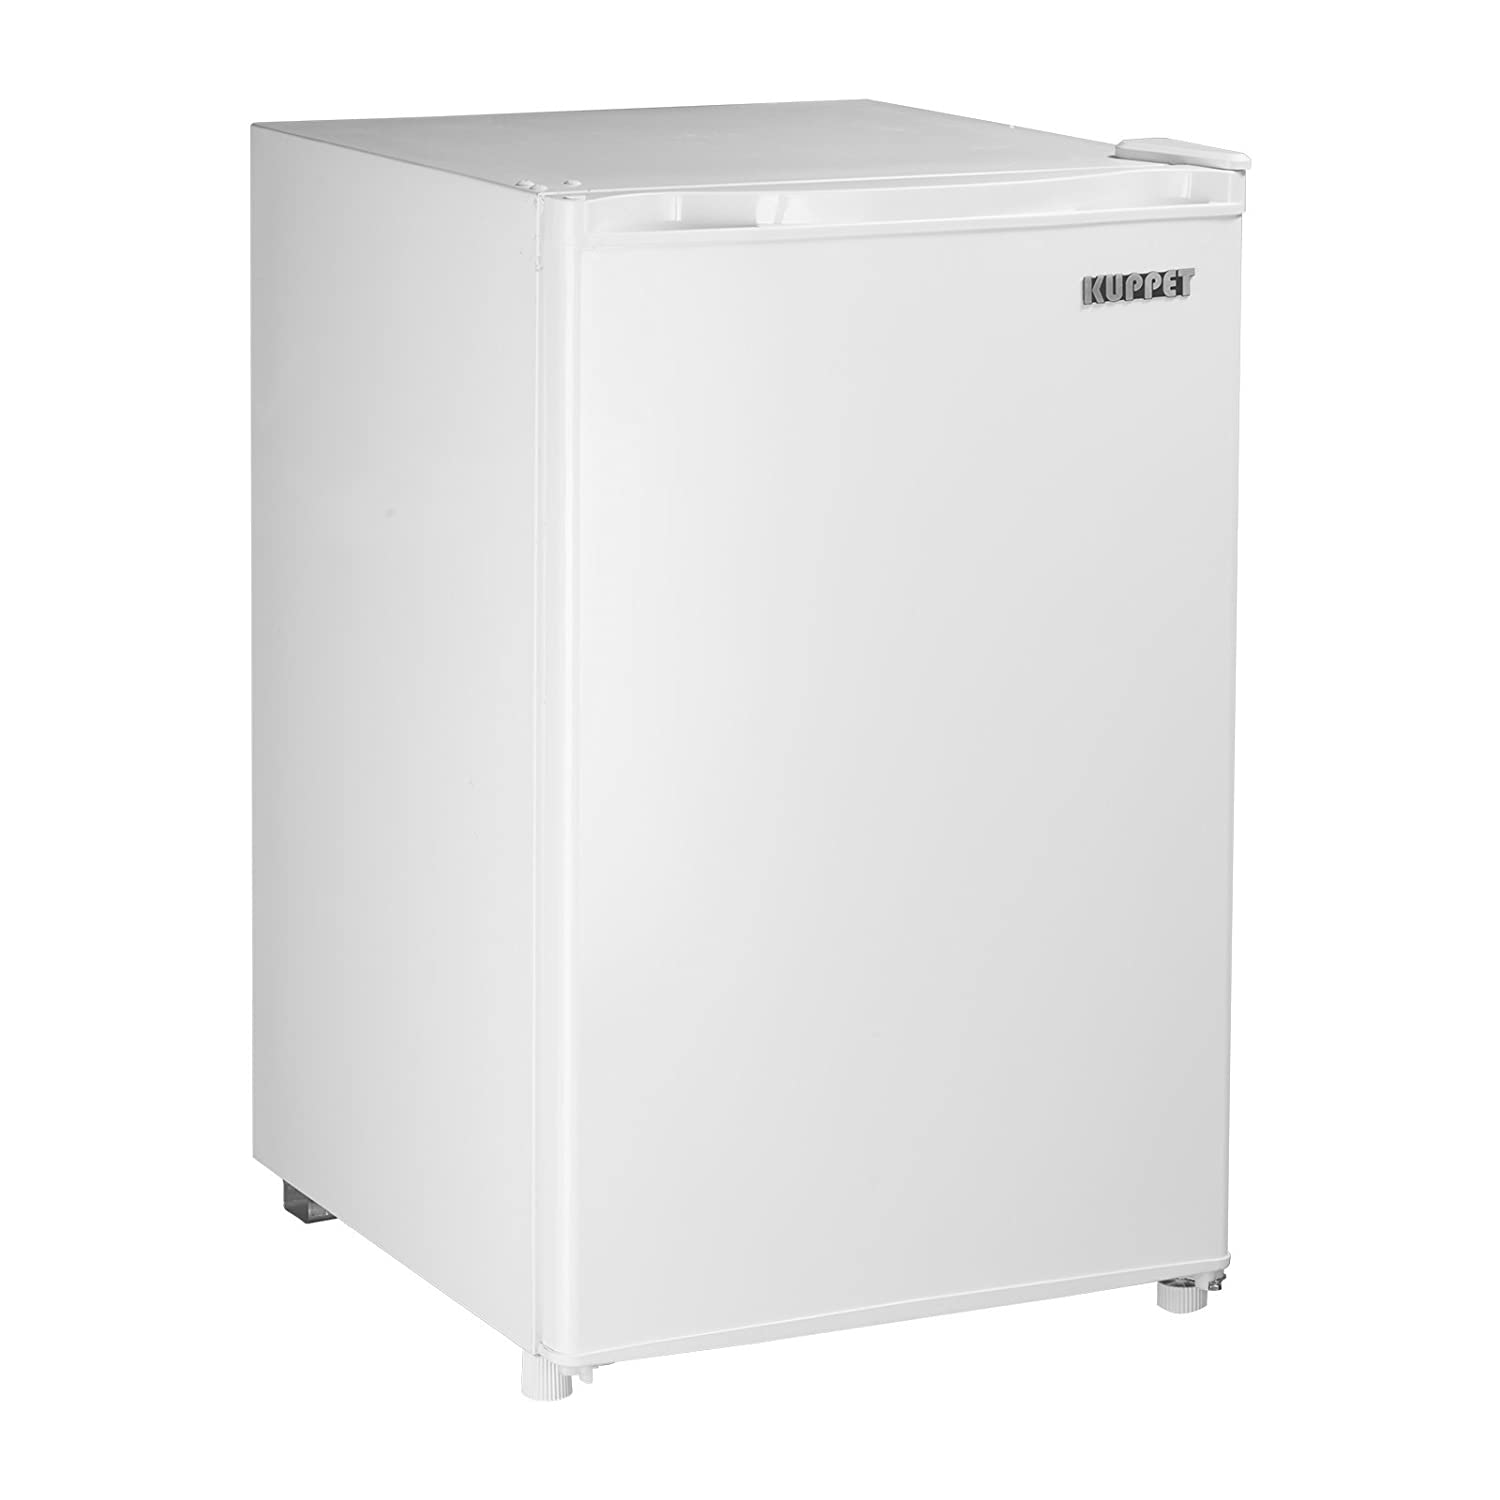 Kuppet-Mini Refrigerator, 4.6 Cu Ft Fridge, Compact Refrigerator-for Dorm, Garage, Camper, Basement or Office (White, 4.6 Cu.Ft.)